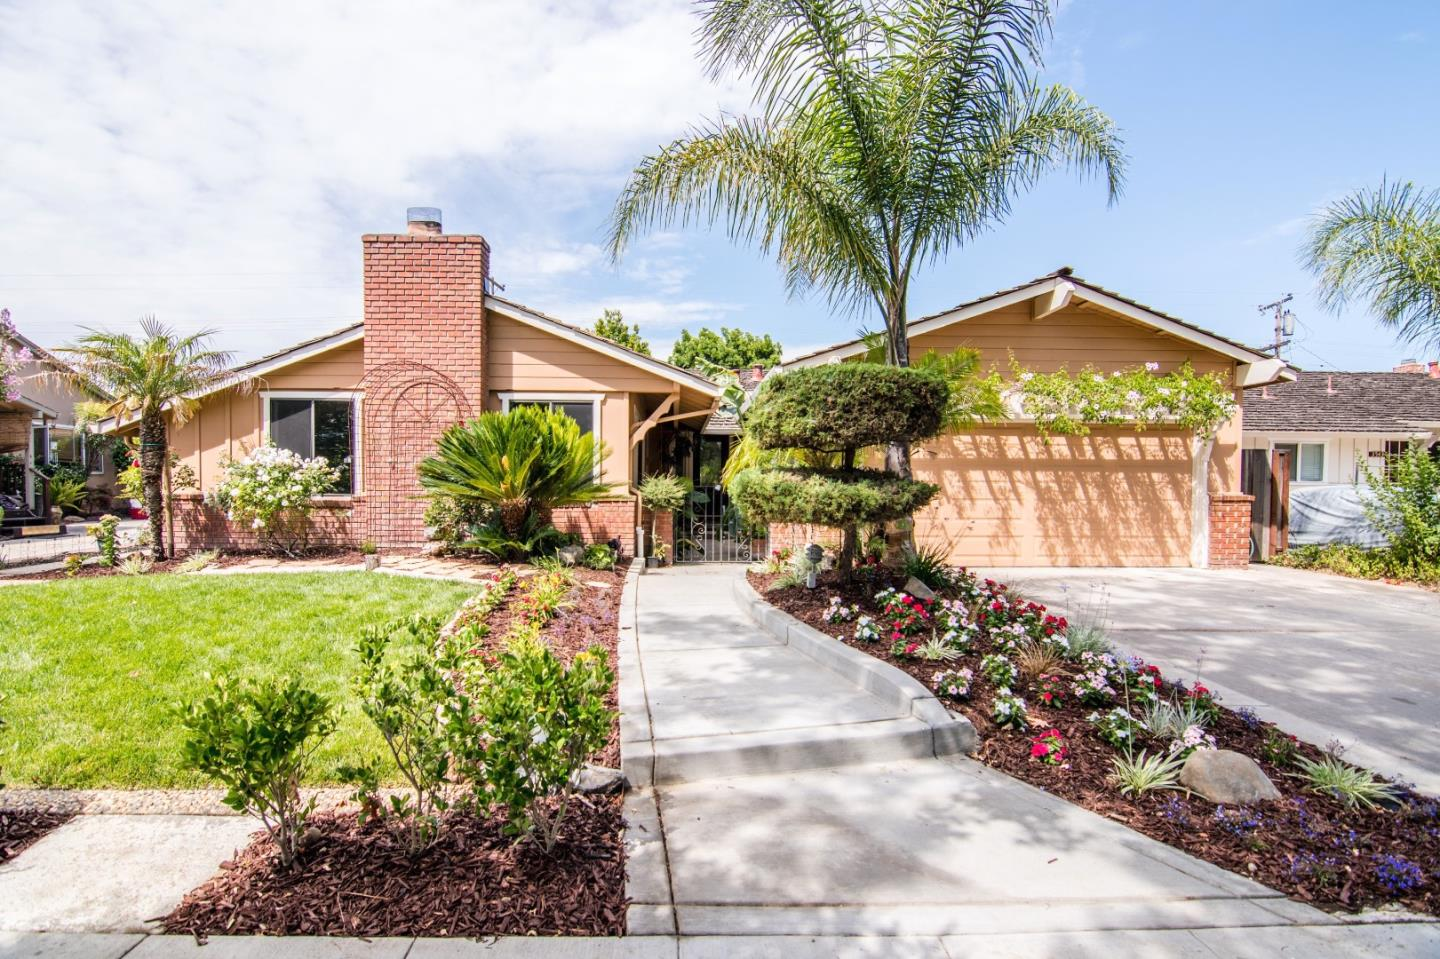 Additional photo for property listing at 3563 Irlanda Way  San Jose, California 95124 Estados Unidos